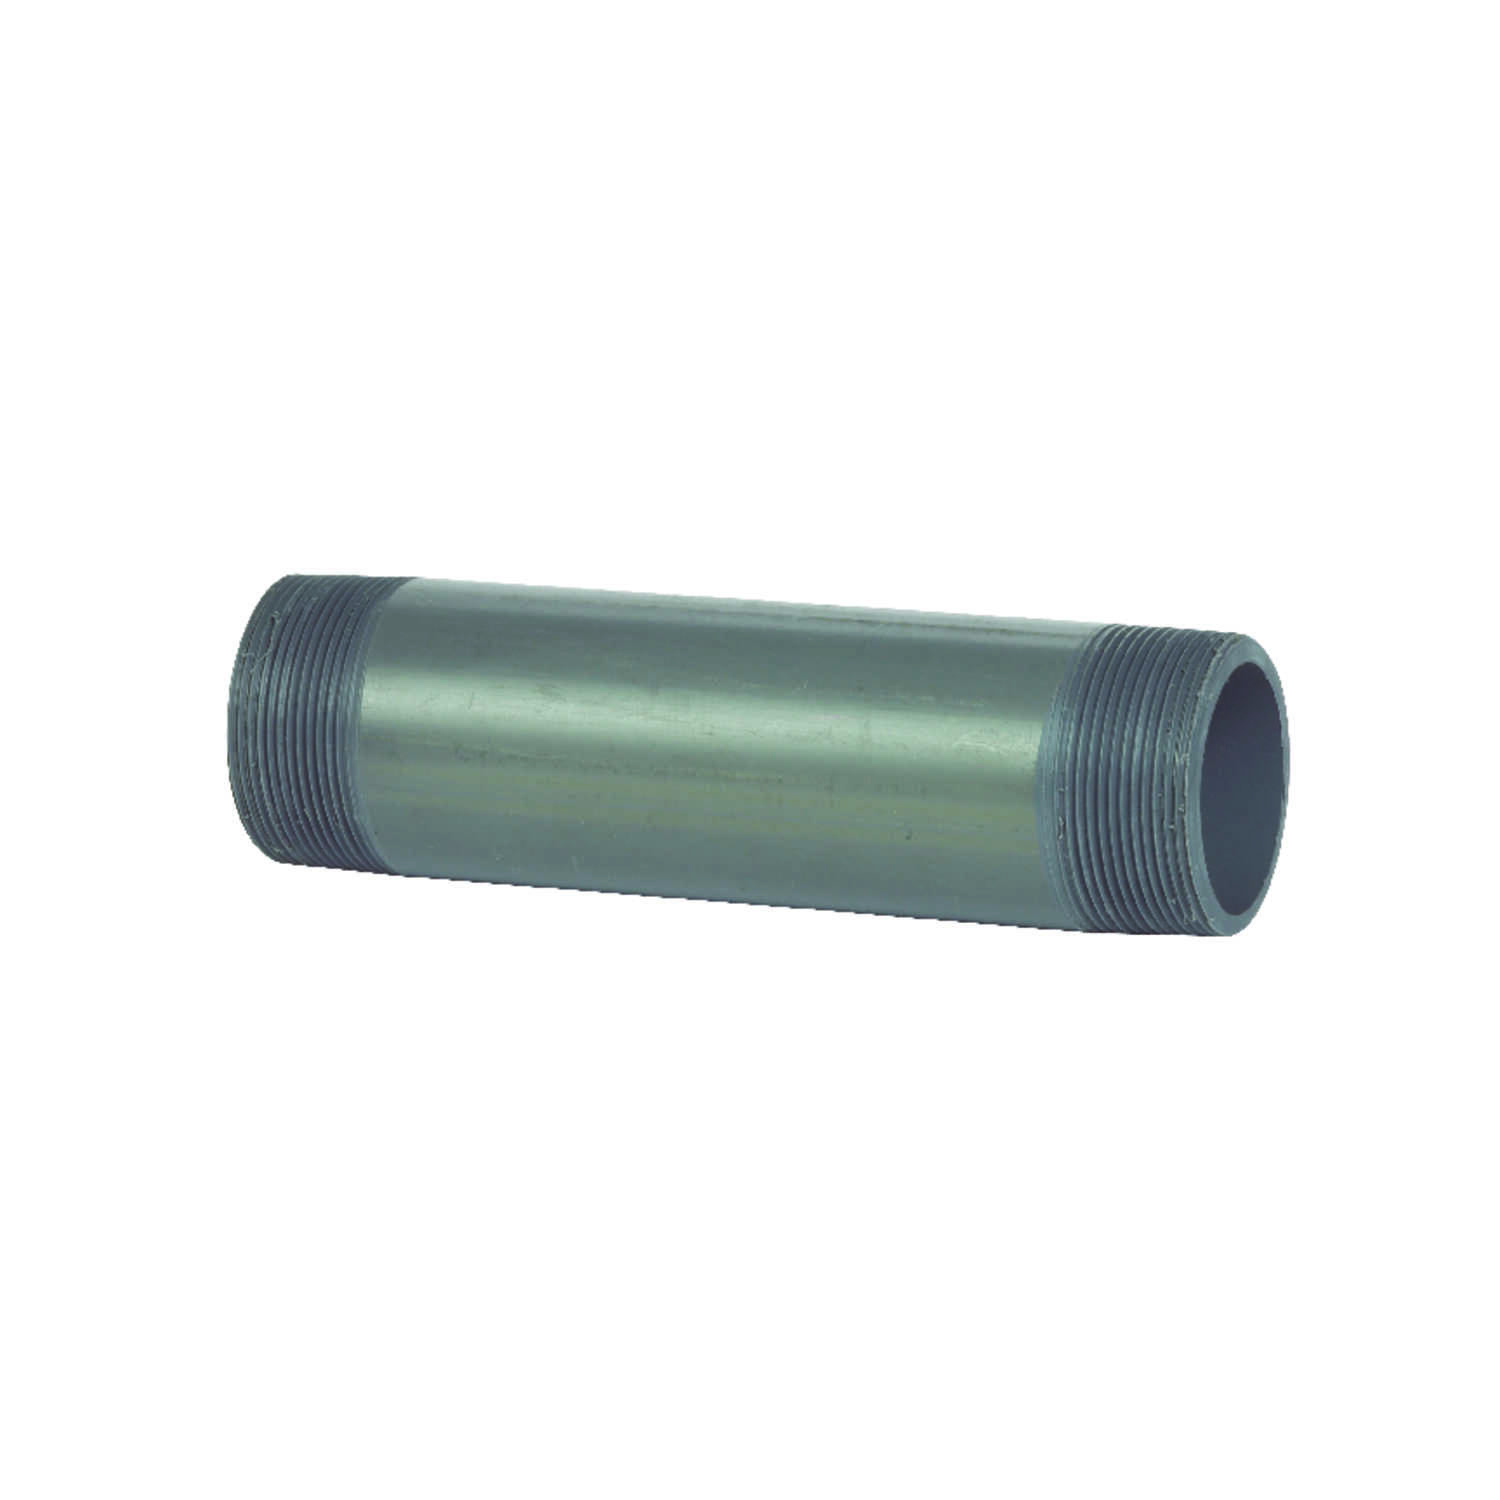 B&K  Schedule 80  2 in. MPT   x 2 in. Dia. MPT  PVC  For Pressure Applications Pipe Nipple